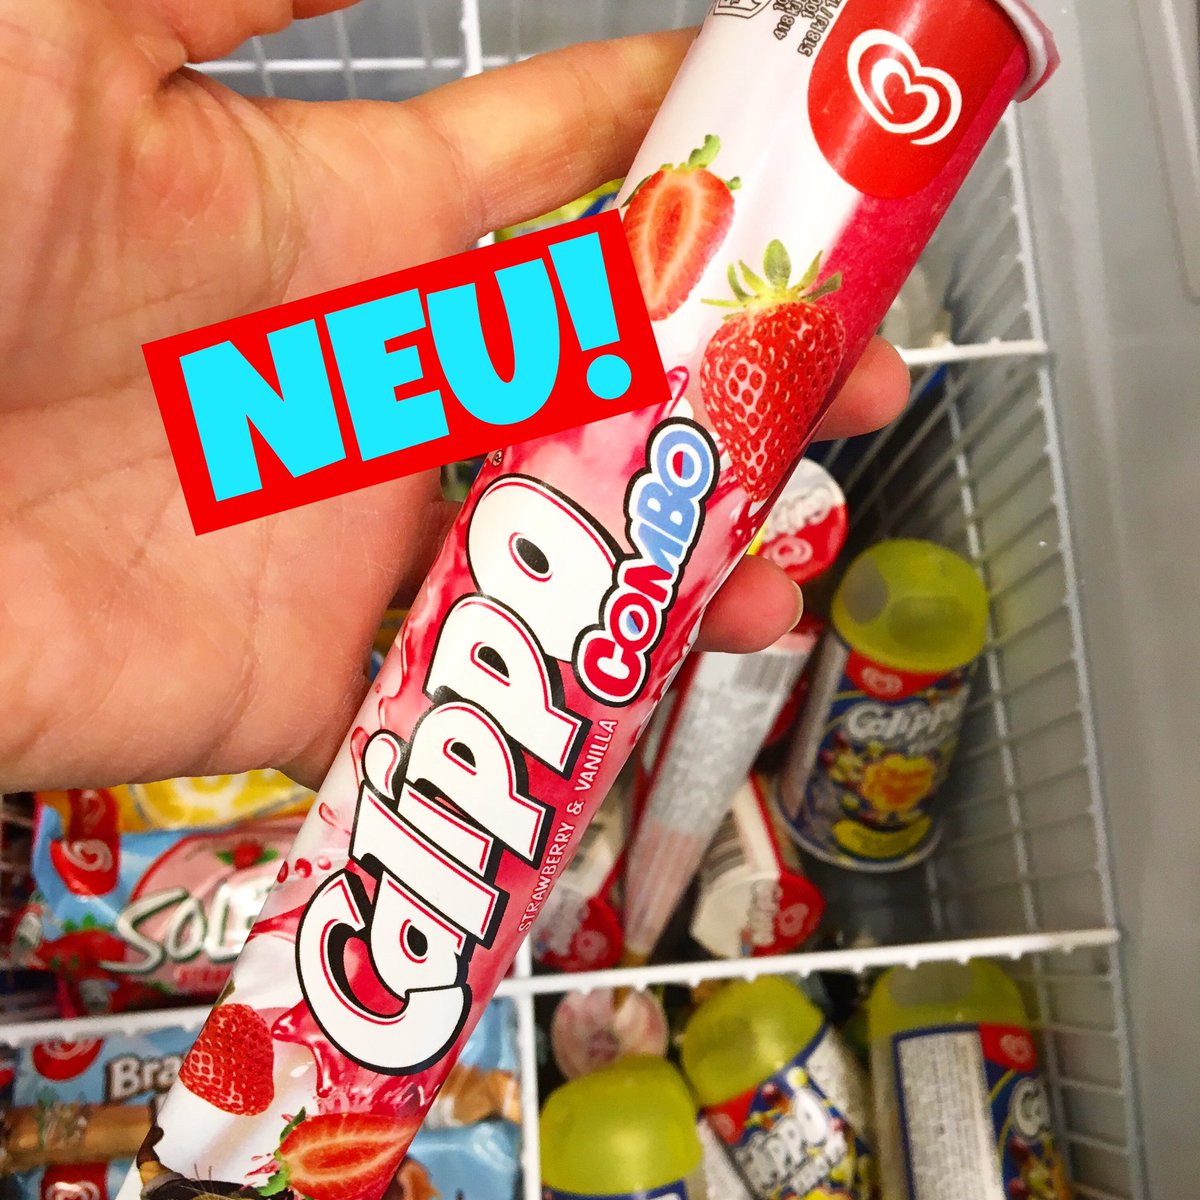 Calippo Eis Foodnewsgermany On Twitter